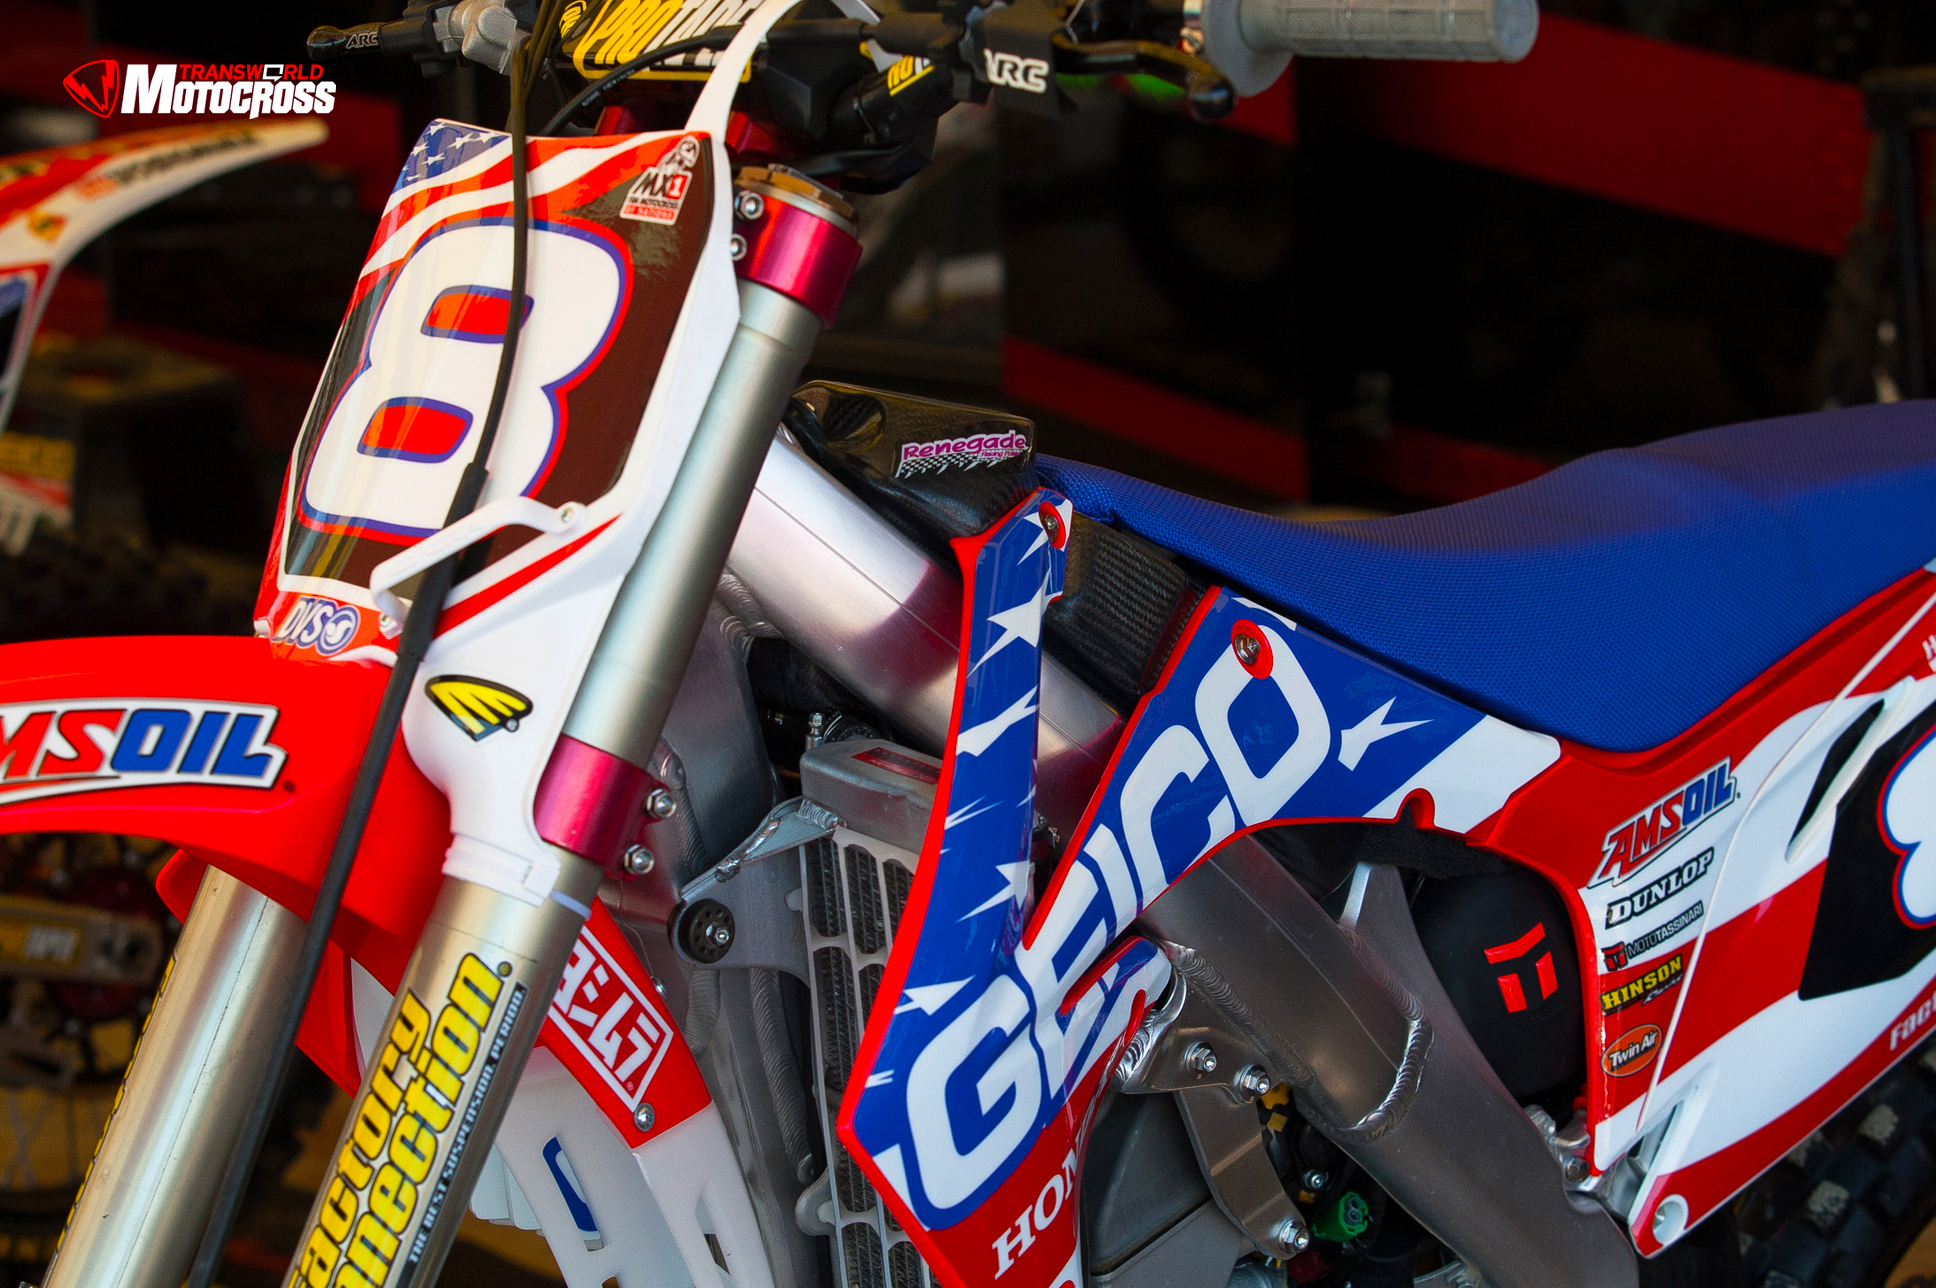 2013_MXON_Preview_Wallpaper_TWMX_332